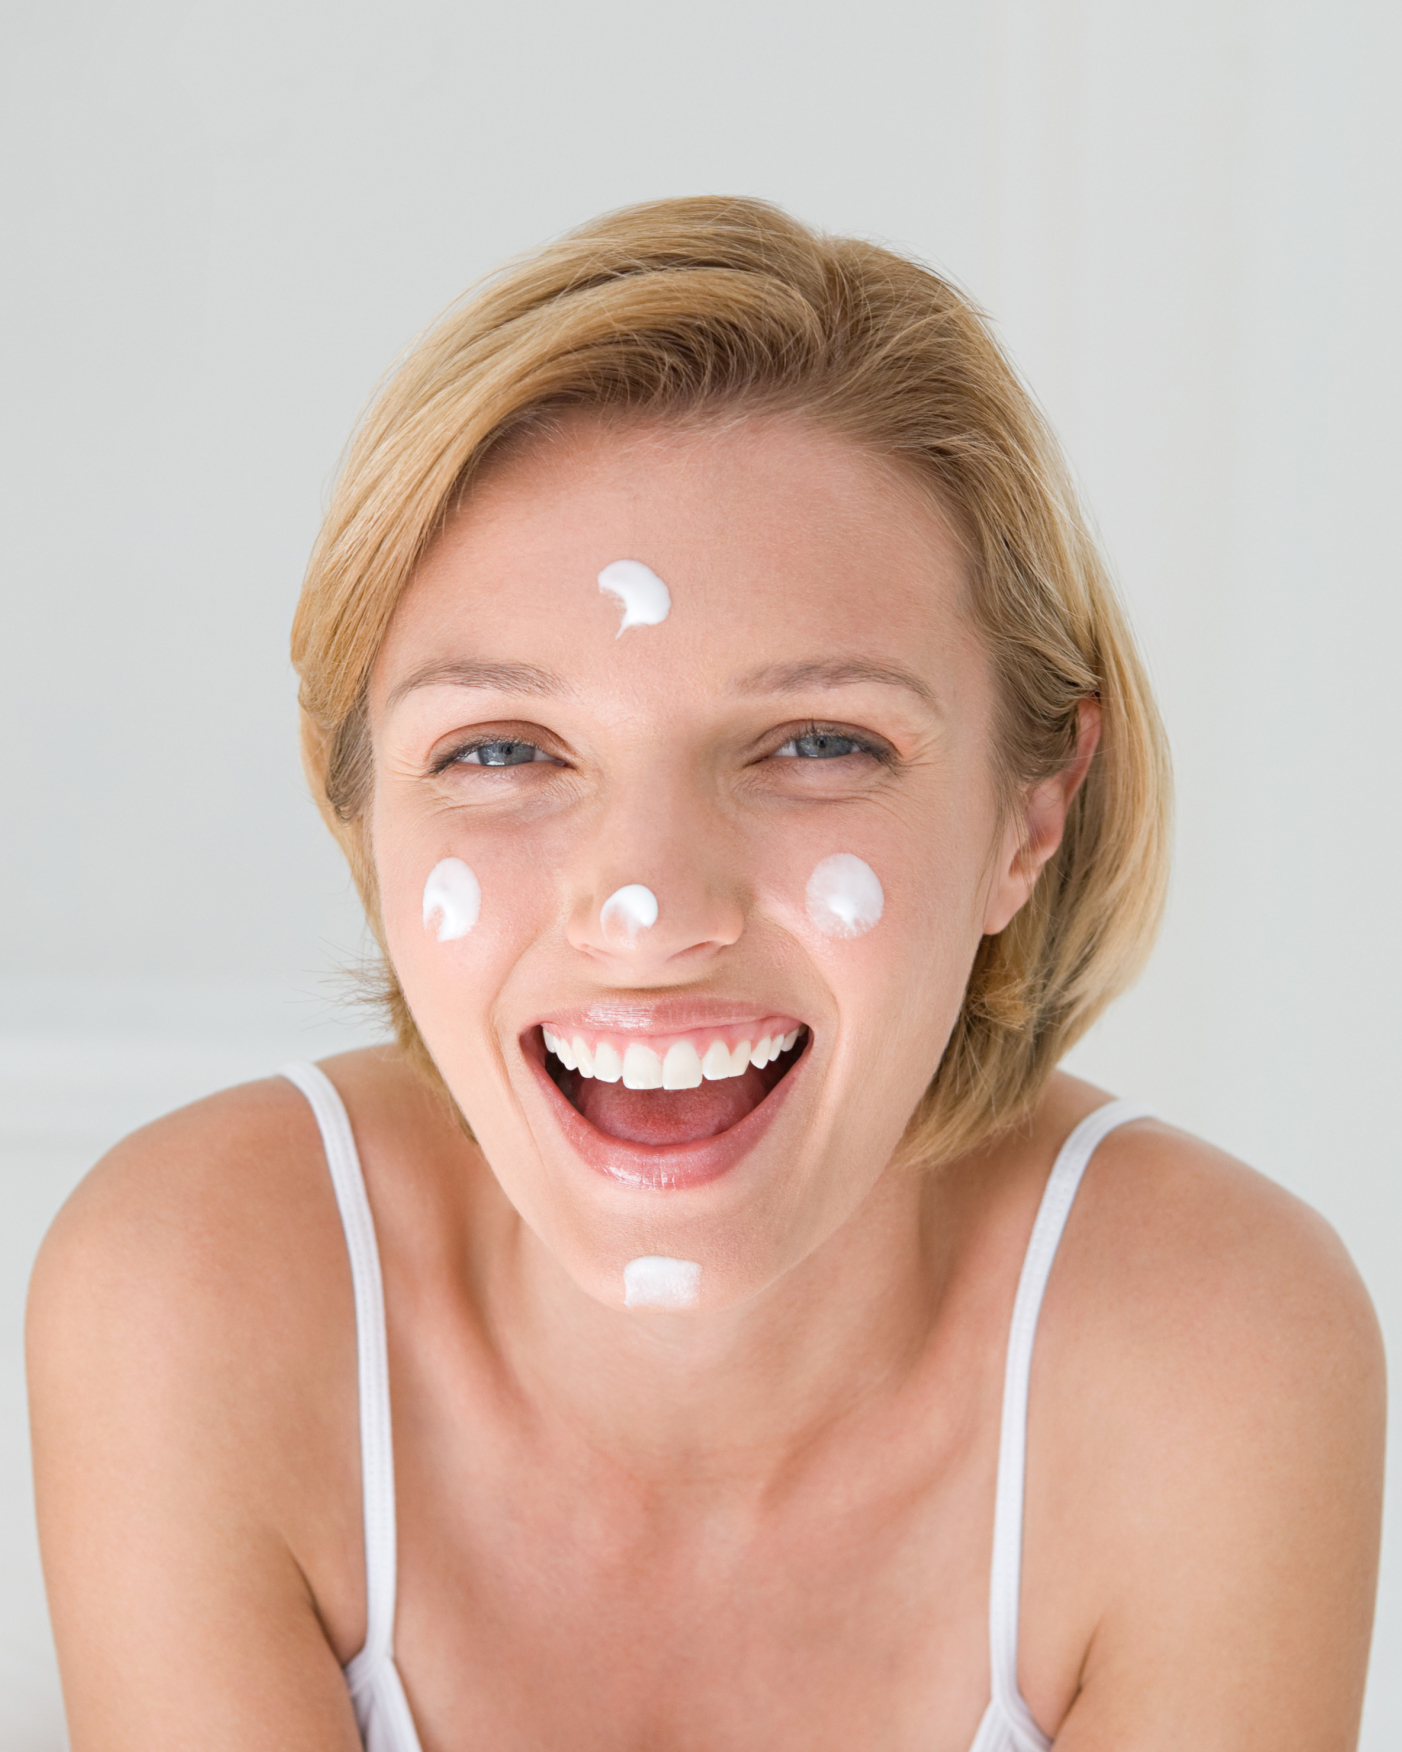 Dermatologists Share the Three Best Things You Can Do for Your Skin Before the Big Day